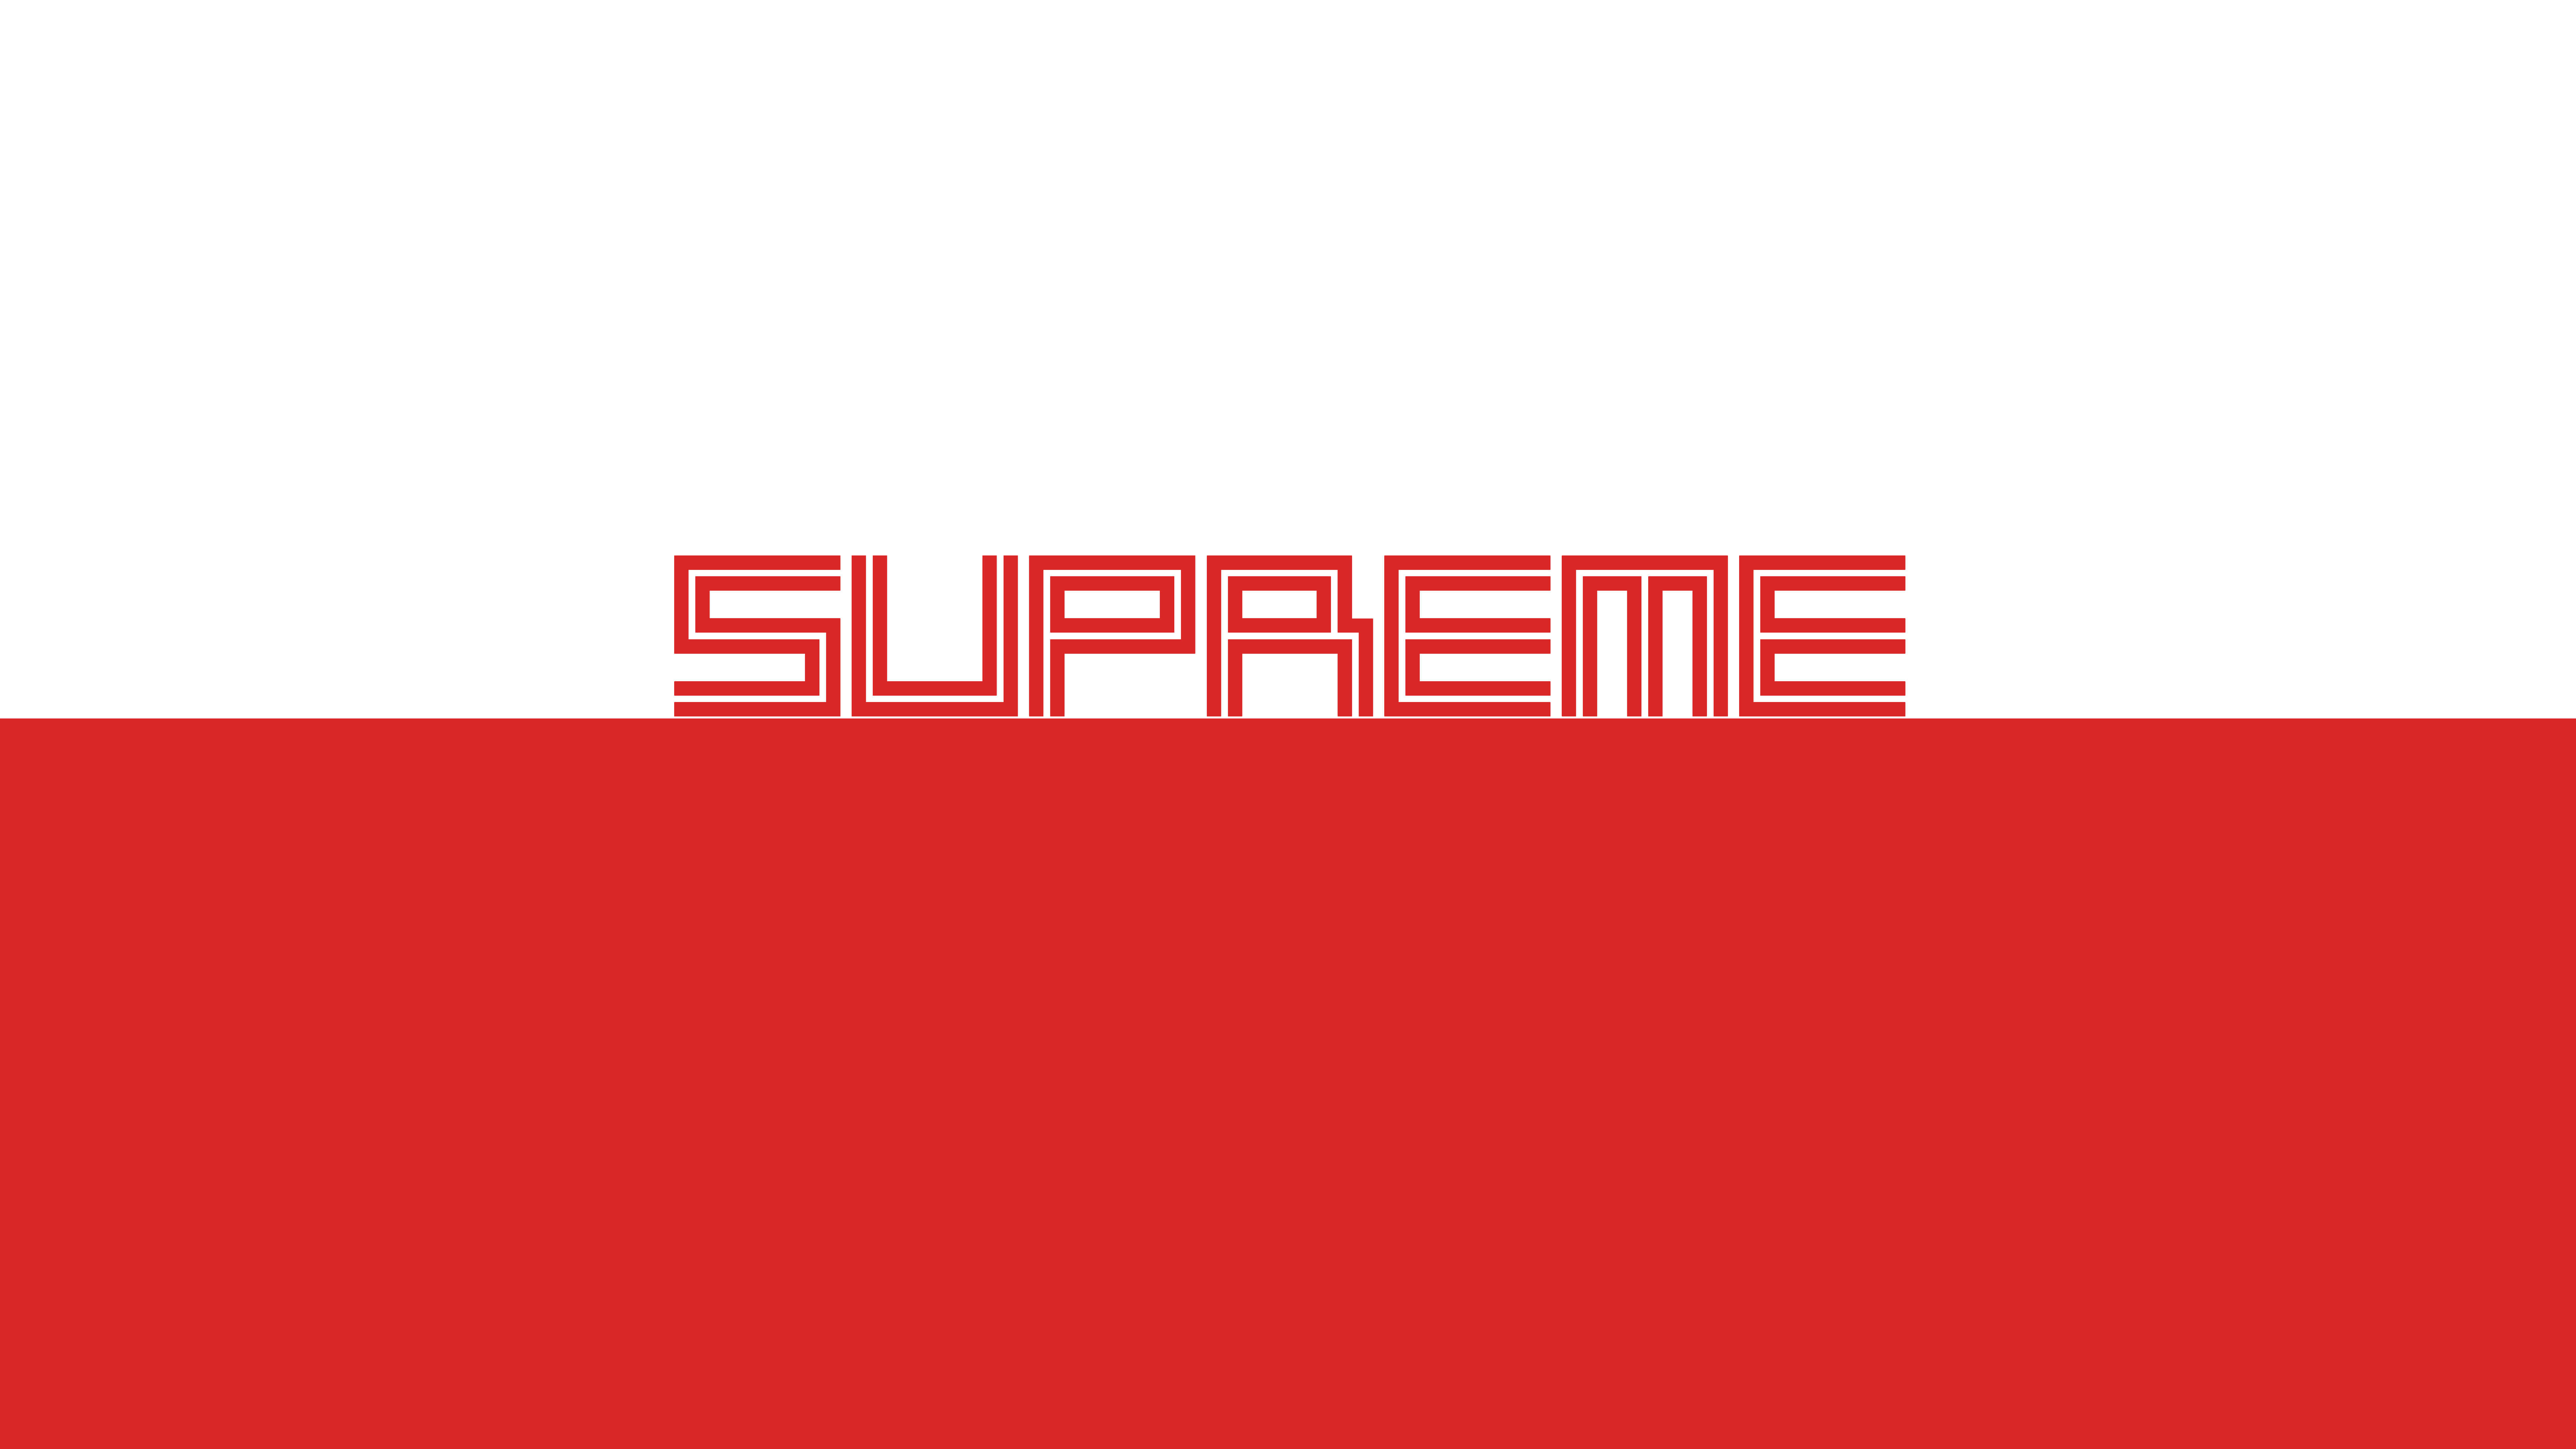 8K Supreme Simple Wallpaper